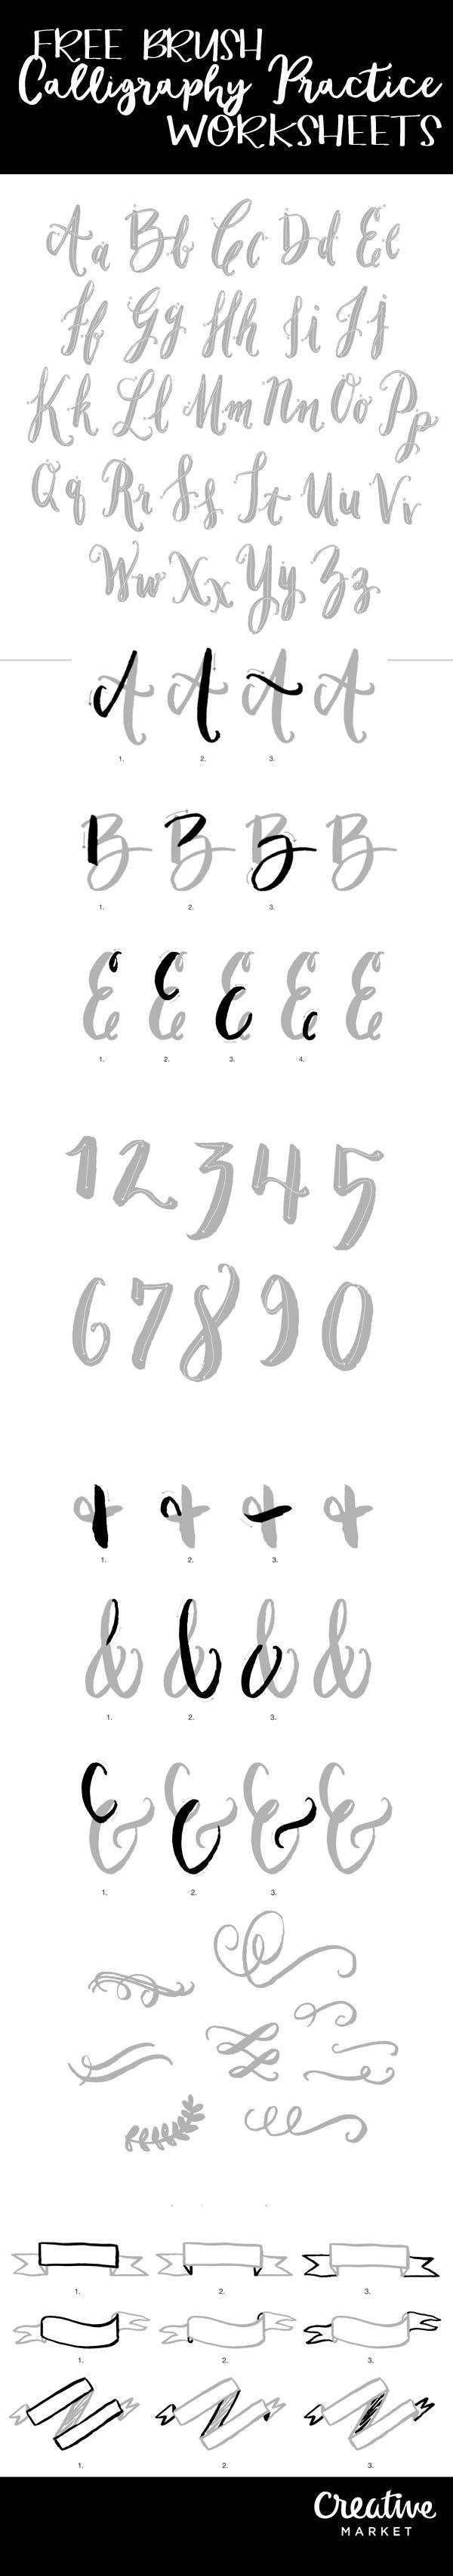 Free Brush Calligraphy Practice Worksheets! - Free Pretty Things For You                                                                                                                                                                                 More